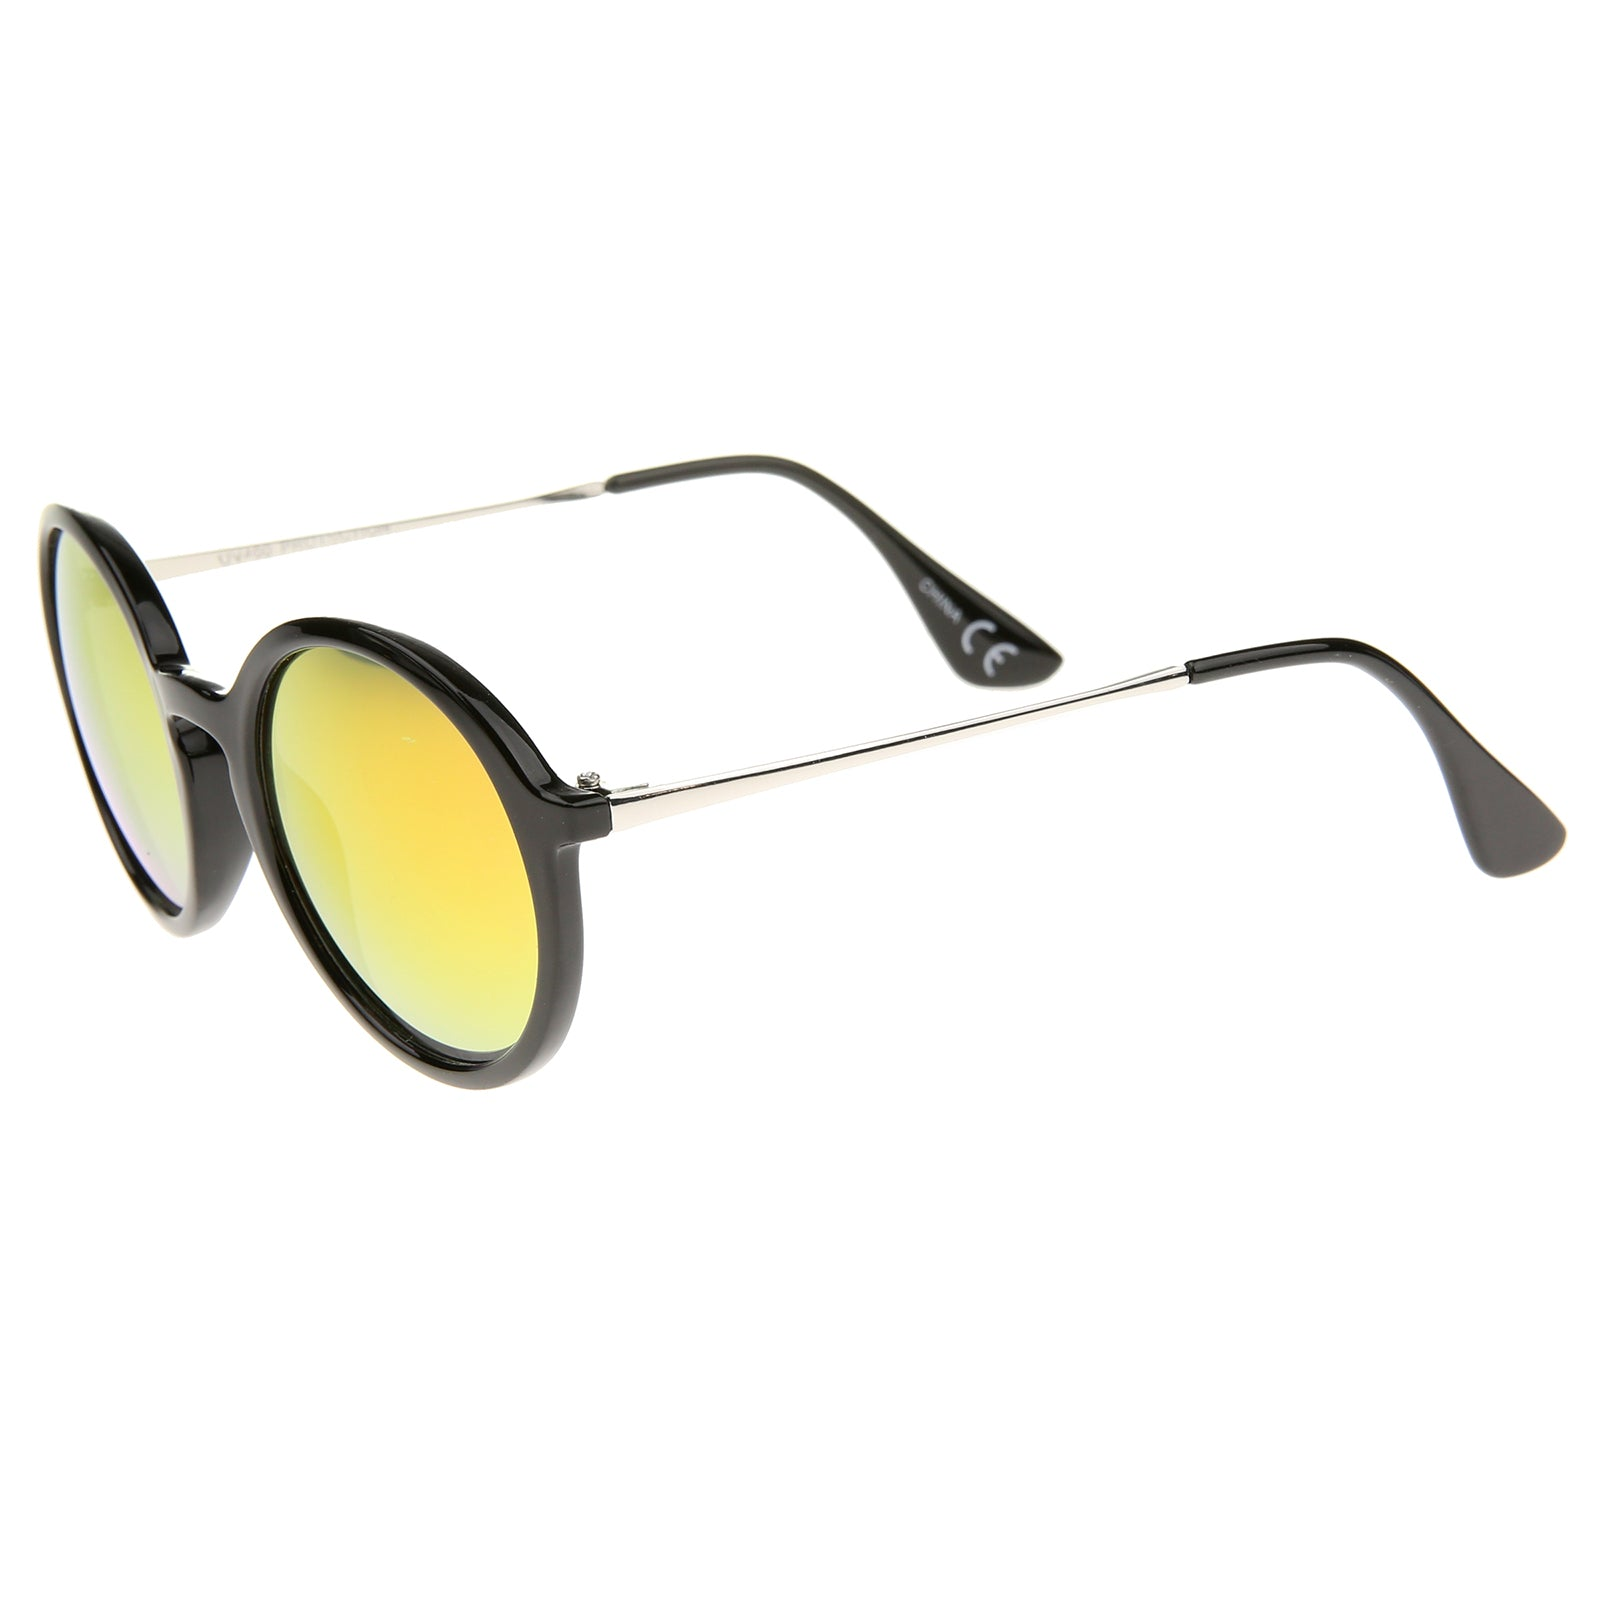 Mid Sized Modern Metal Temple Mirror Lens Round Sunglasses 49mm - sunglass.la - 23